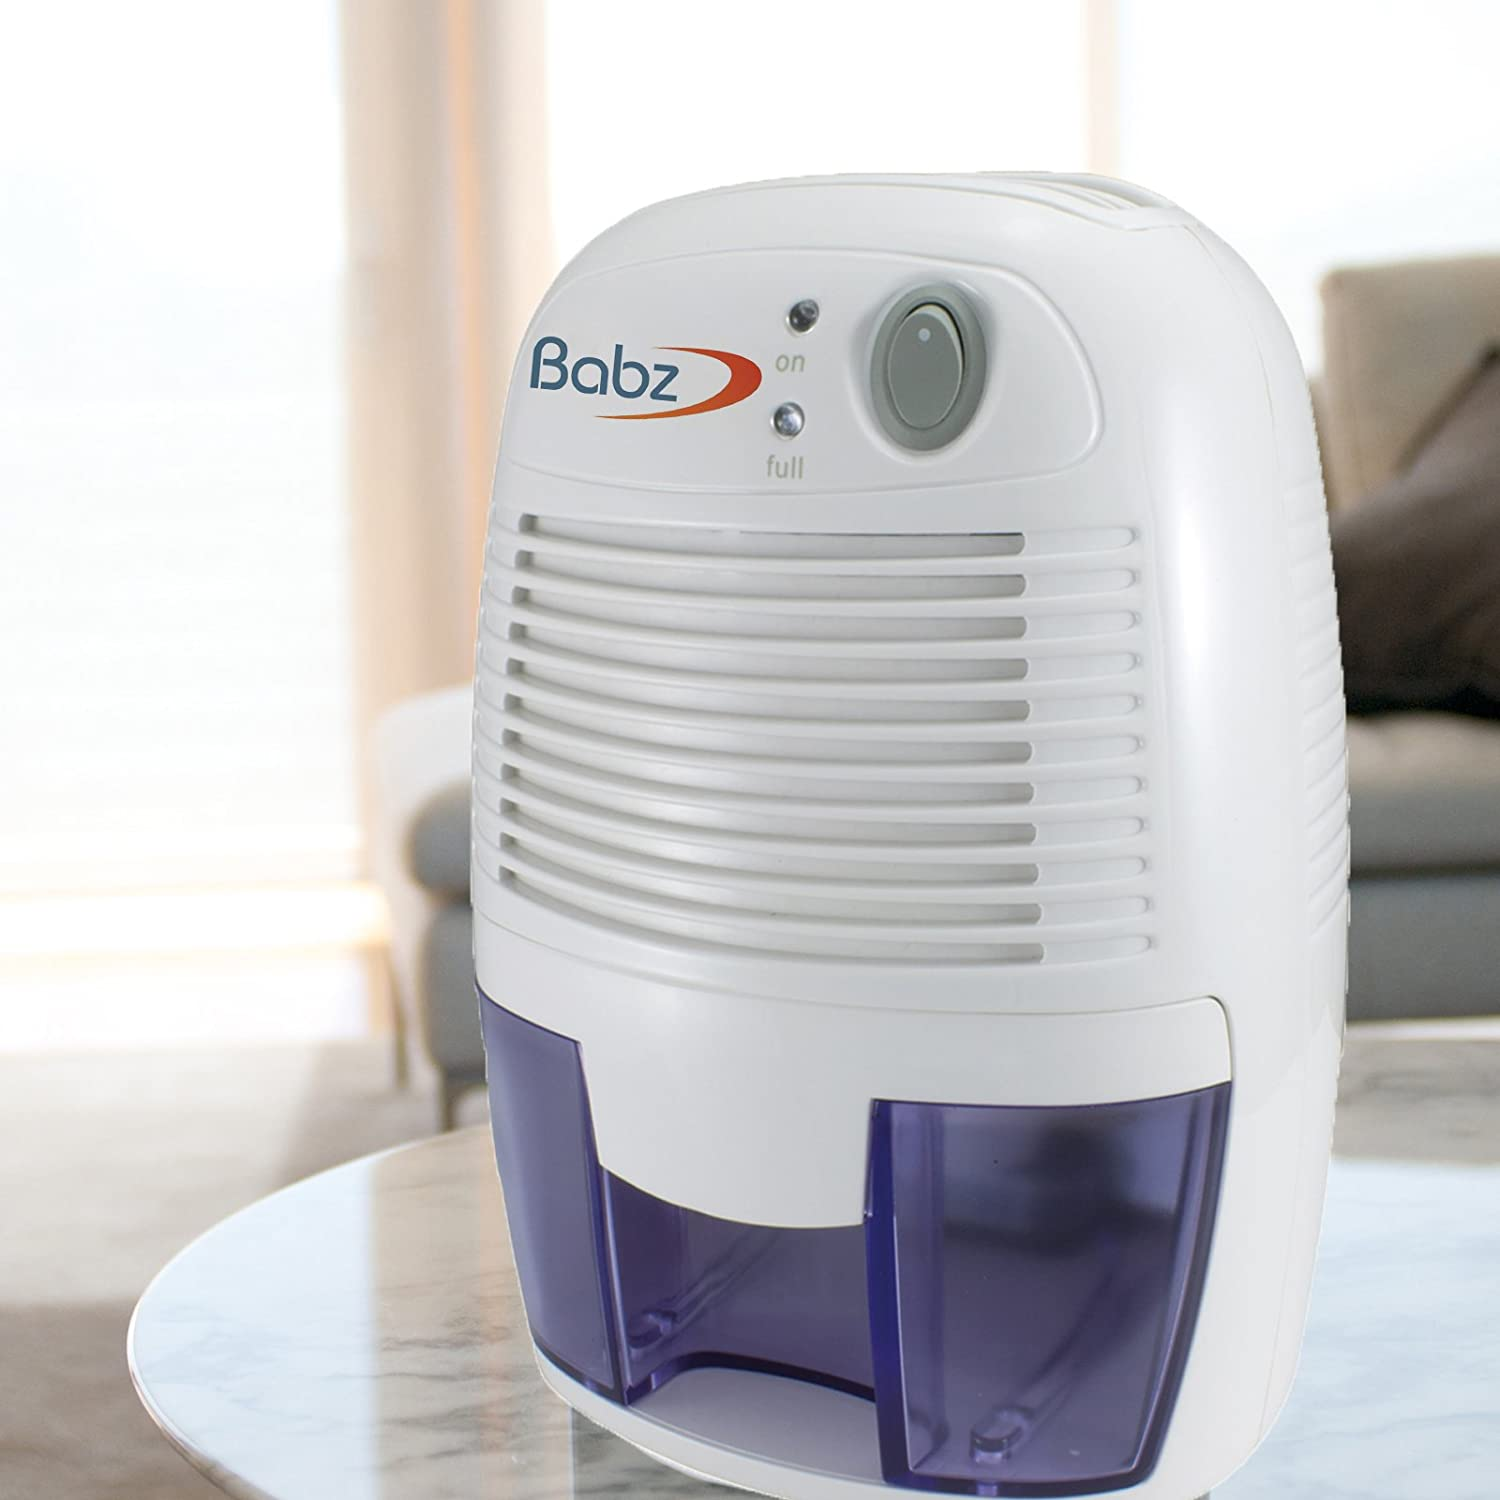 Small Dehumidifier For Bedroom Babz 500ml Compact And Portable Mini Air Dehumidifier For Damp